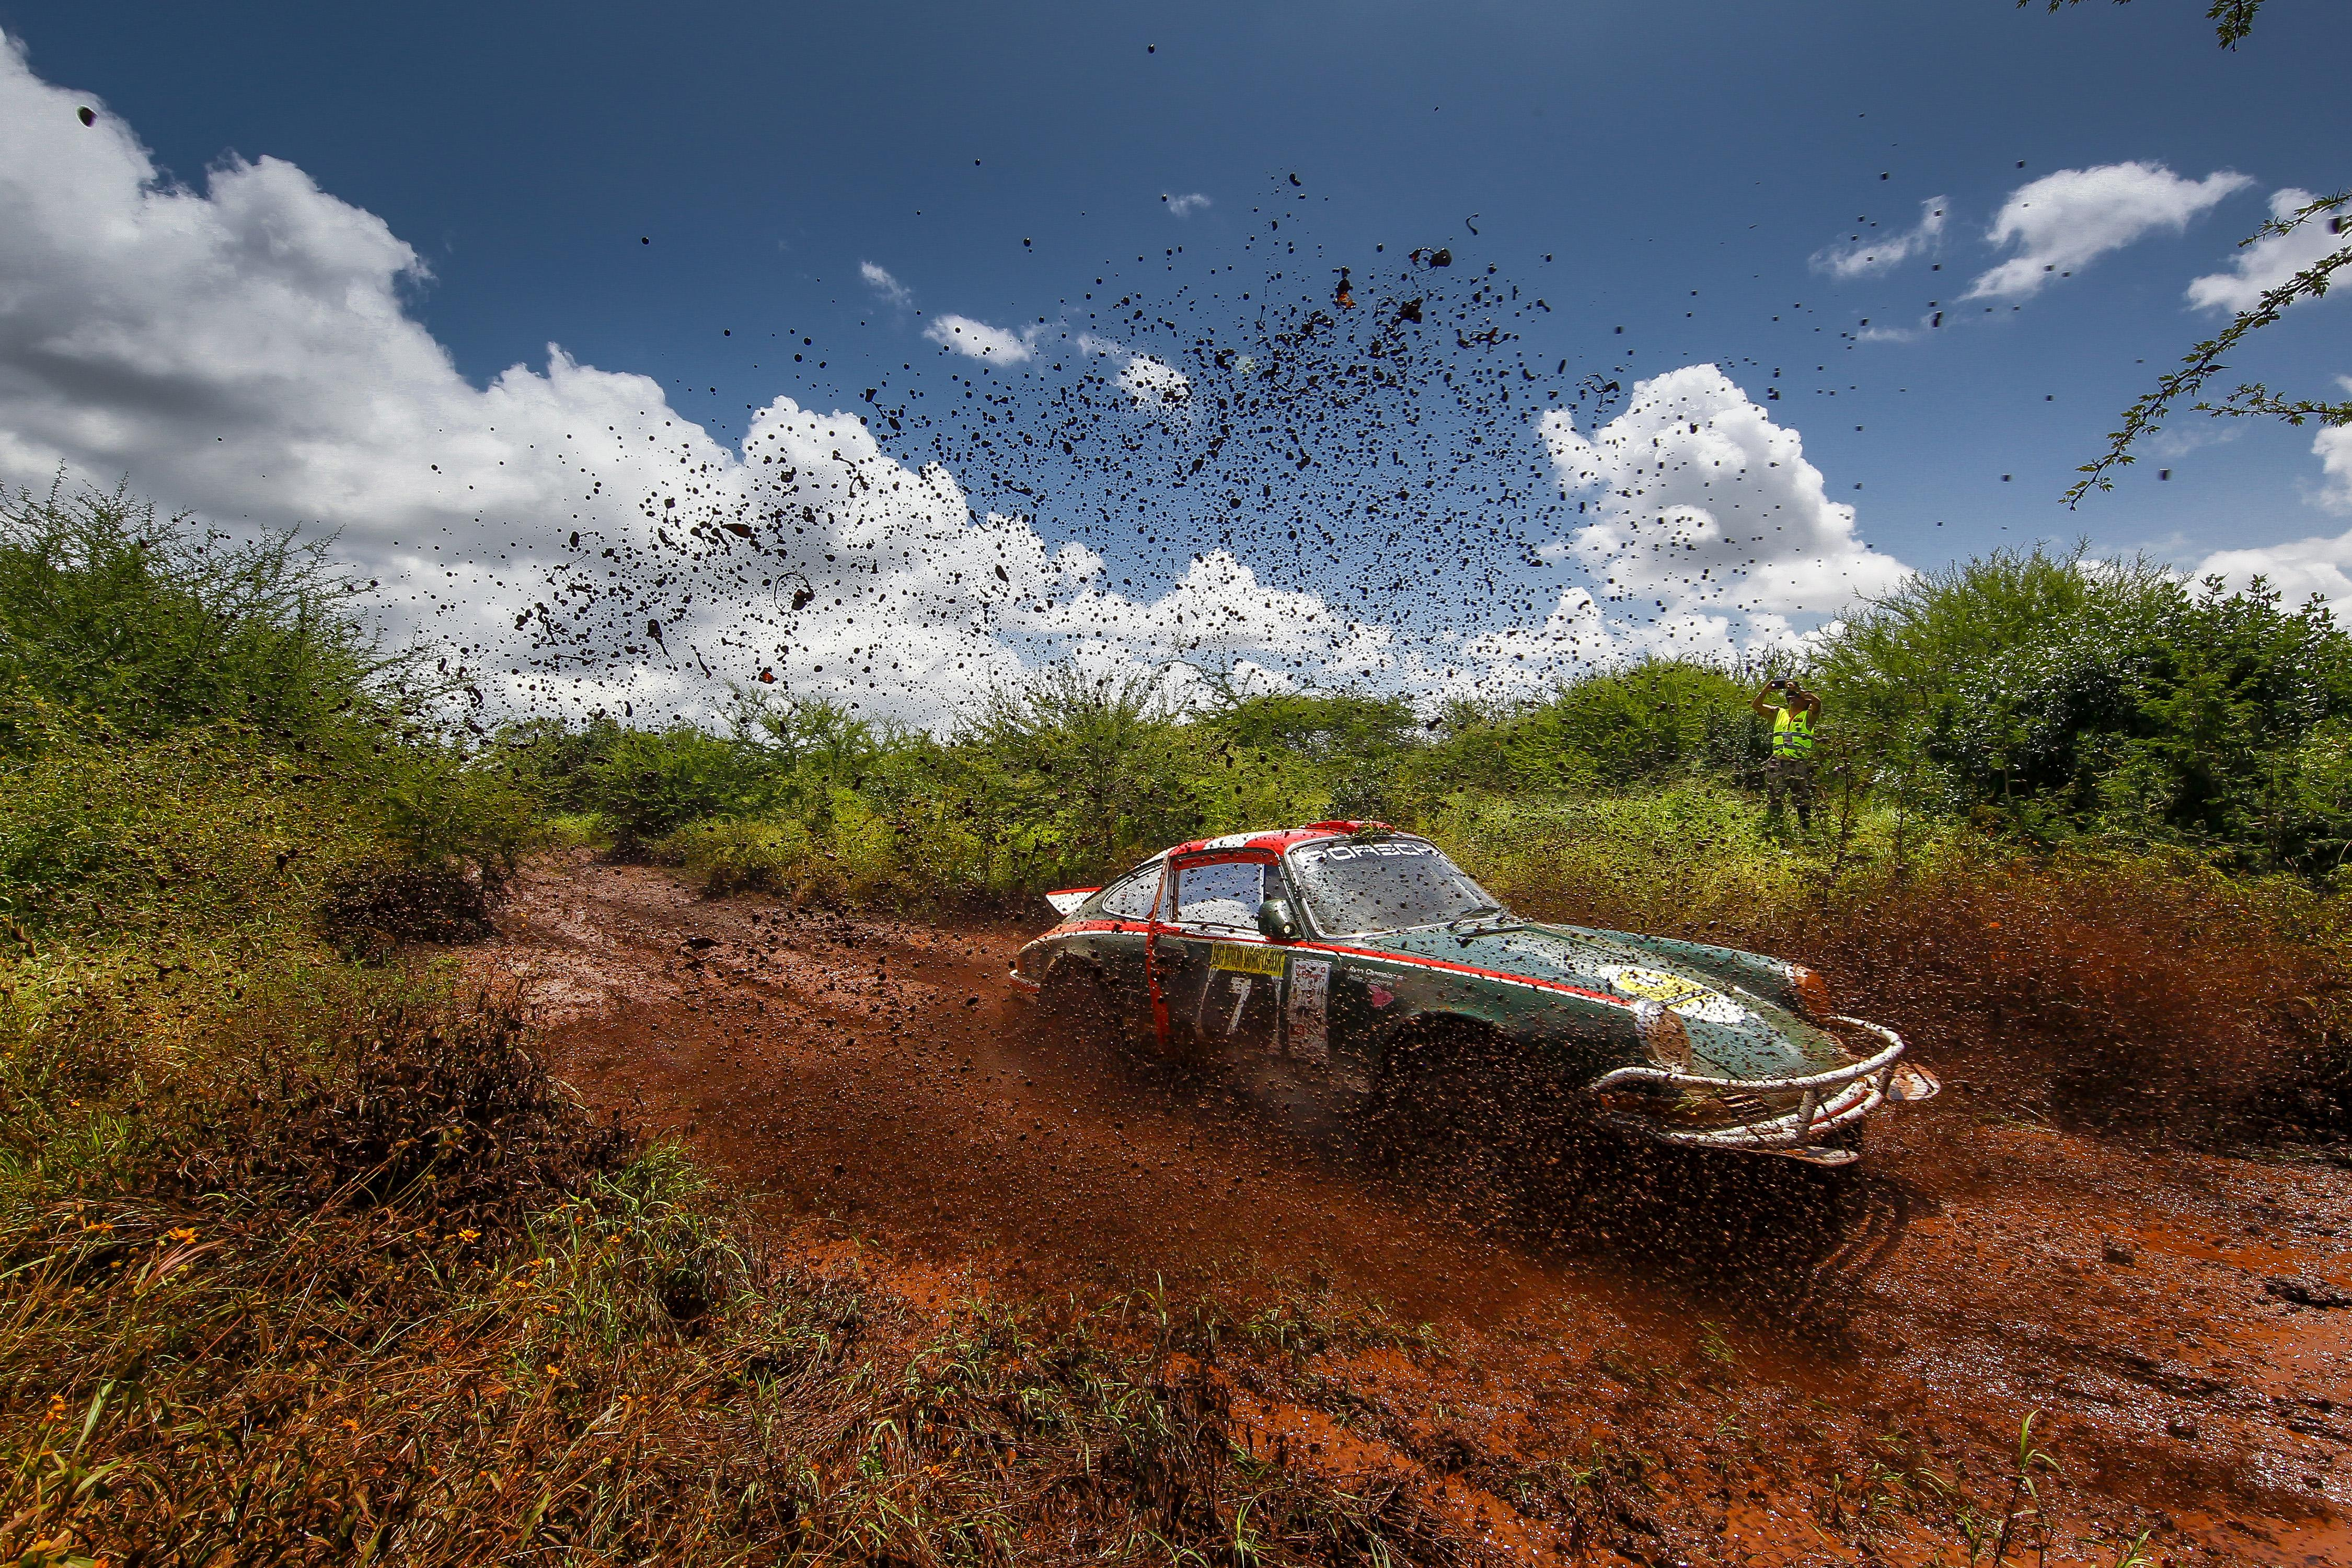 The East African Safari Classic Rally